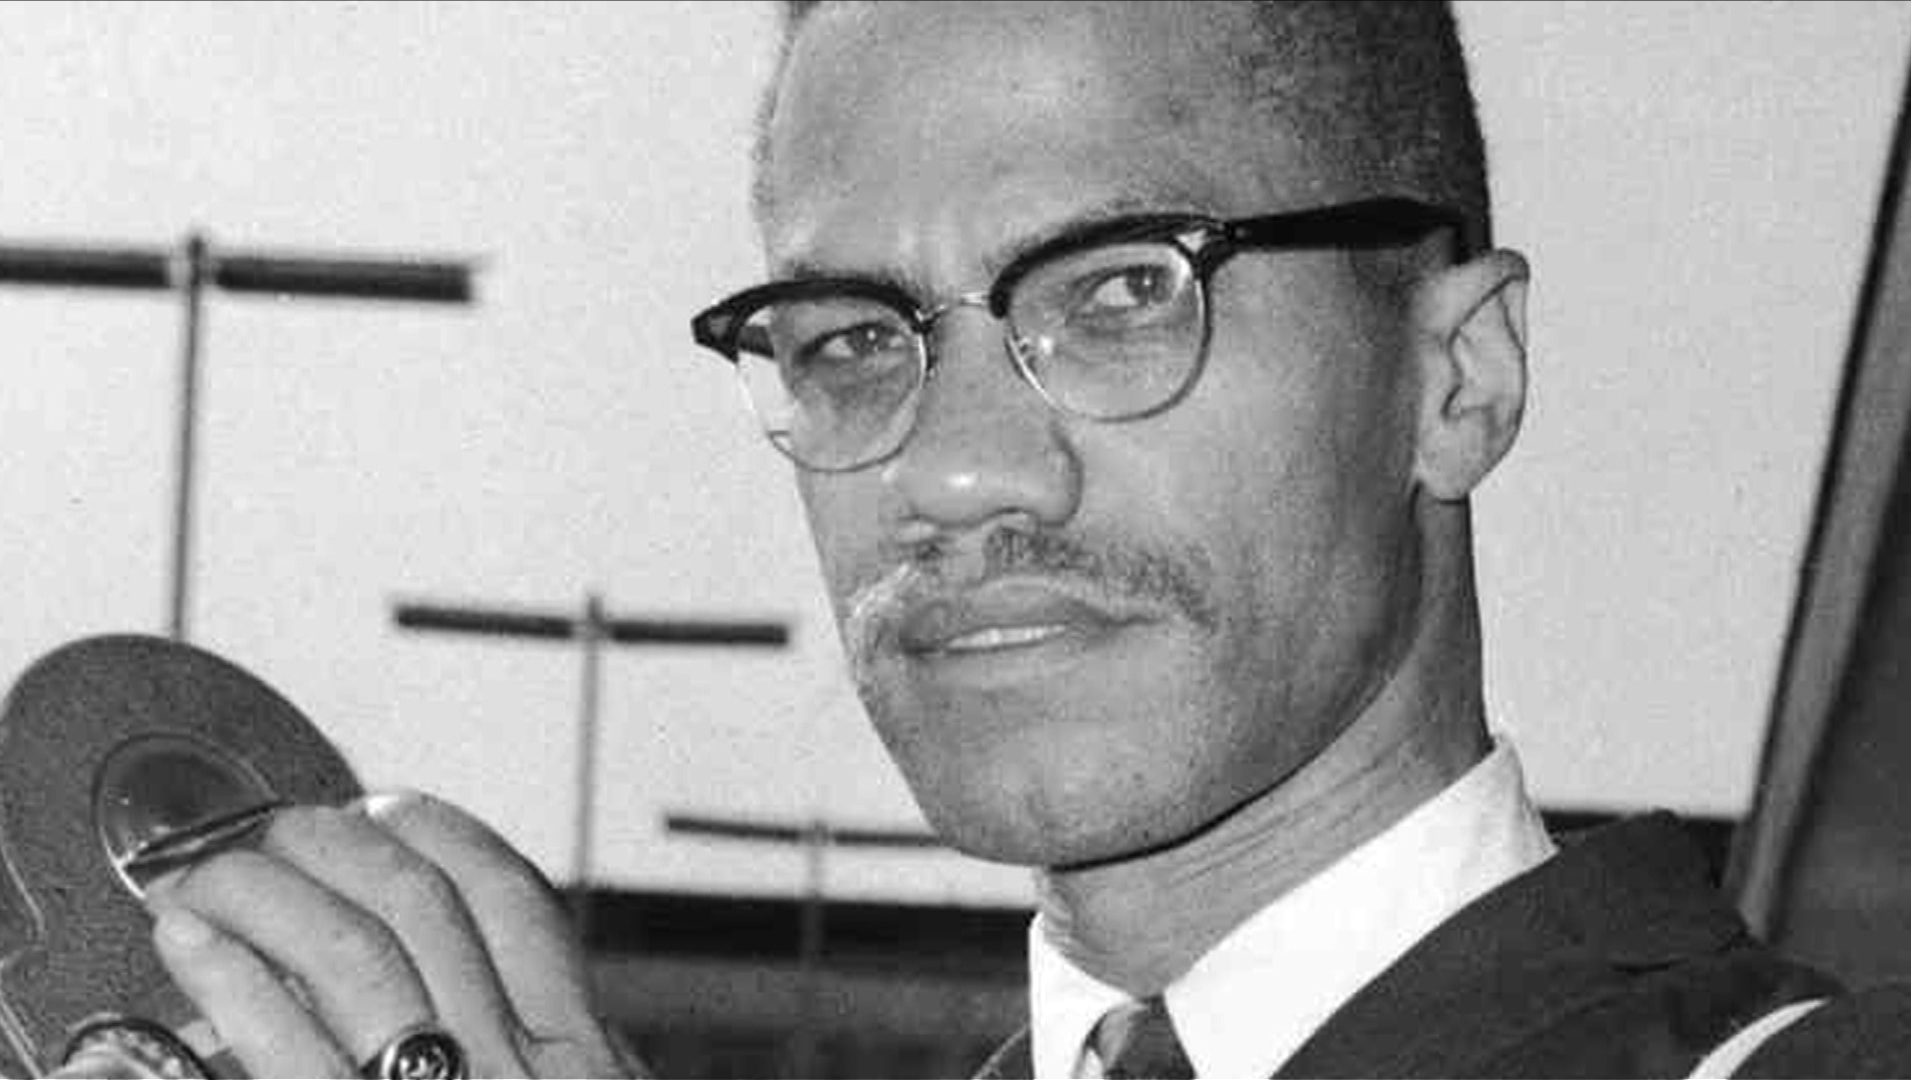 malcom x and the nation of Malcolm x: prince of islam is  both the powers that be and the nation of islam wanted malcom x gone malcolm was becoming a uniter rather than a divider.